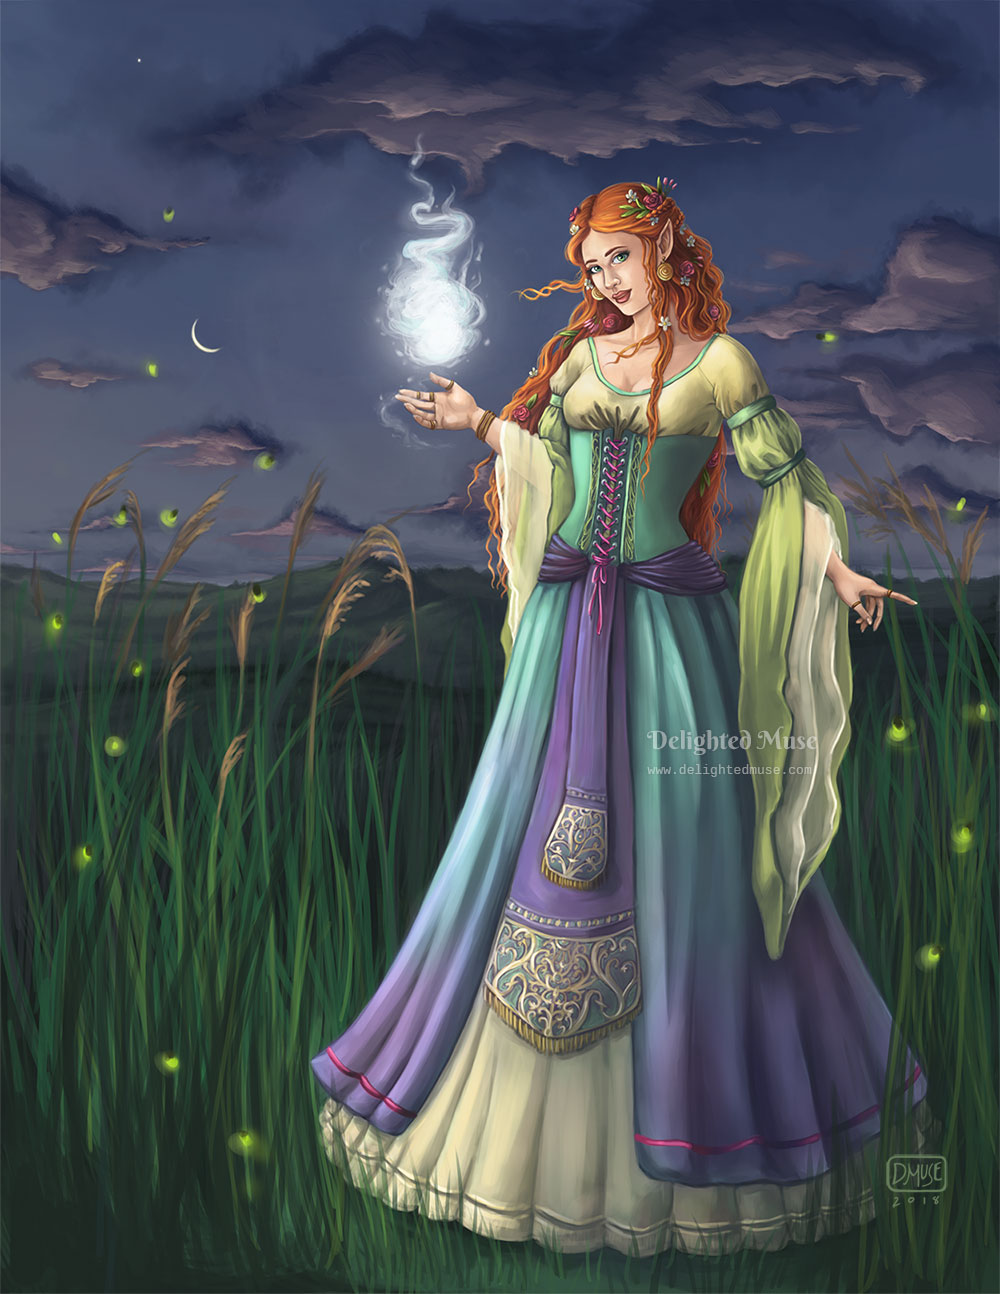 Digital Painting - Sorceress of Eventide